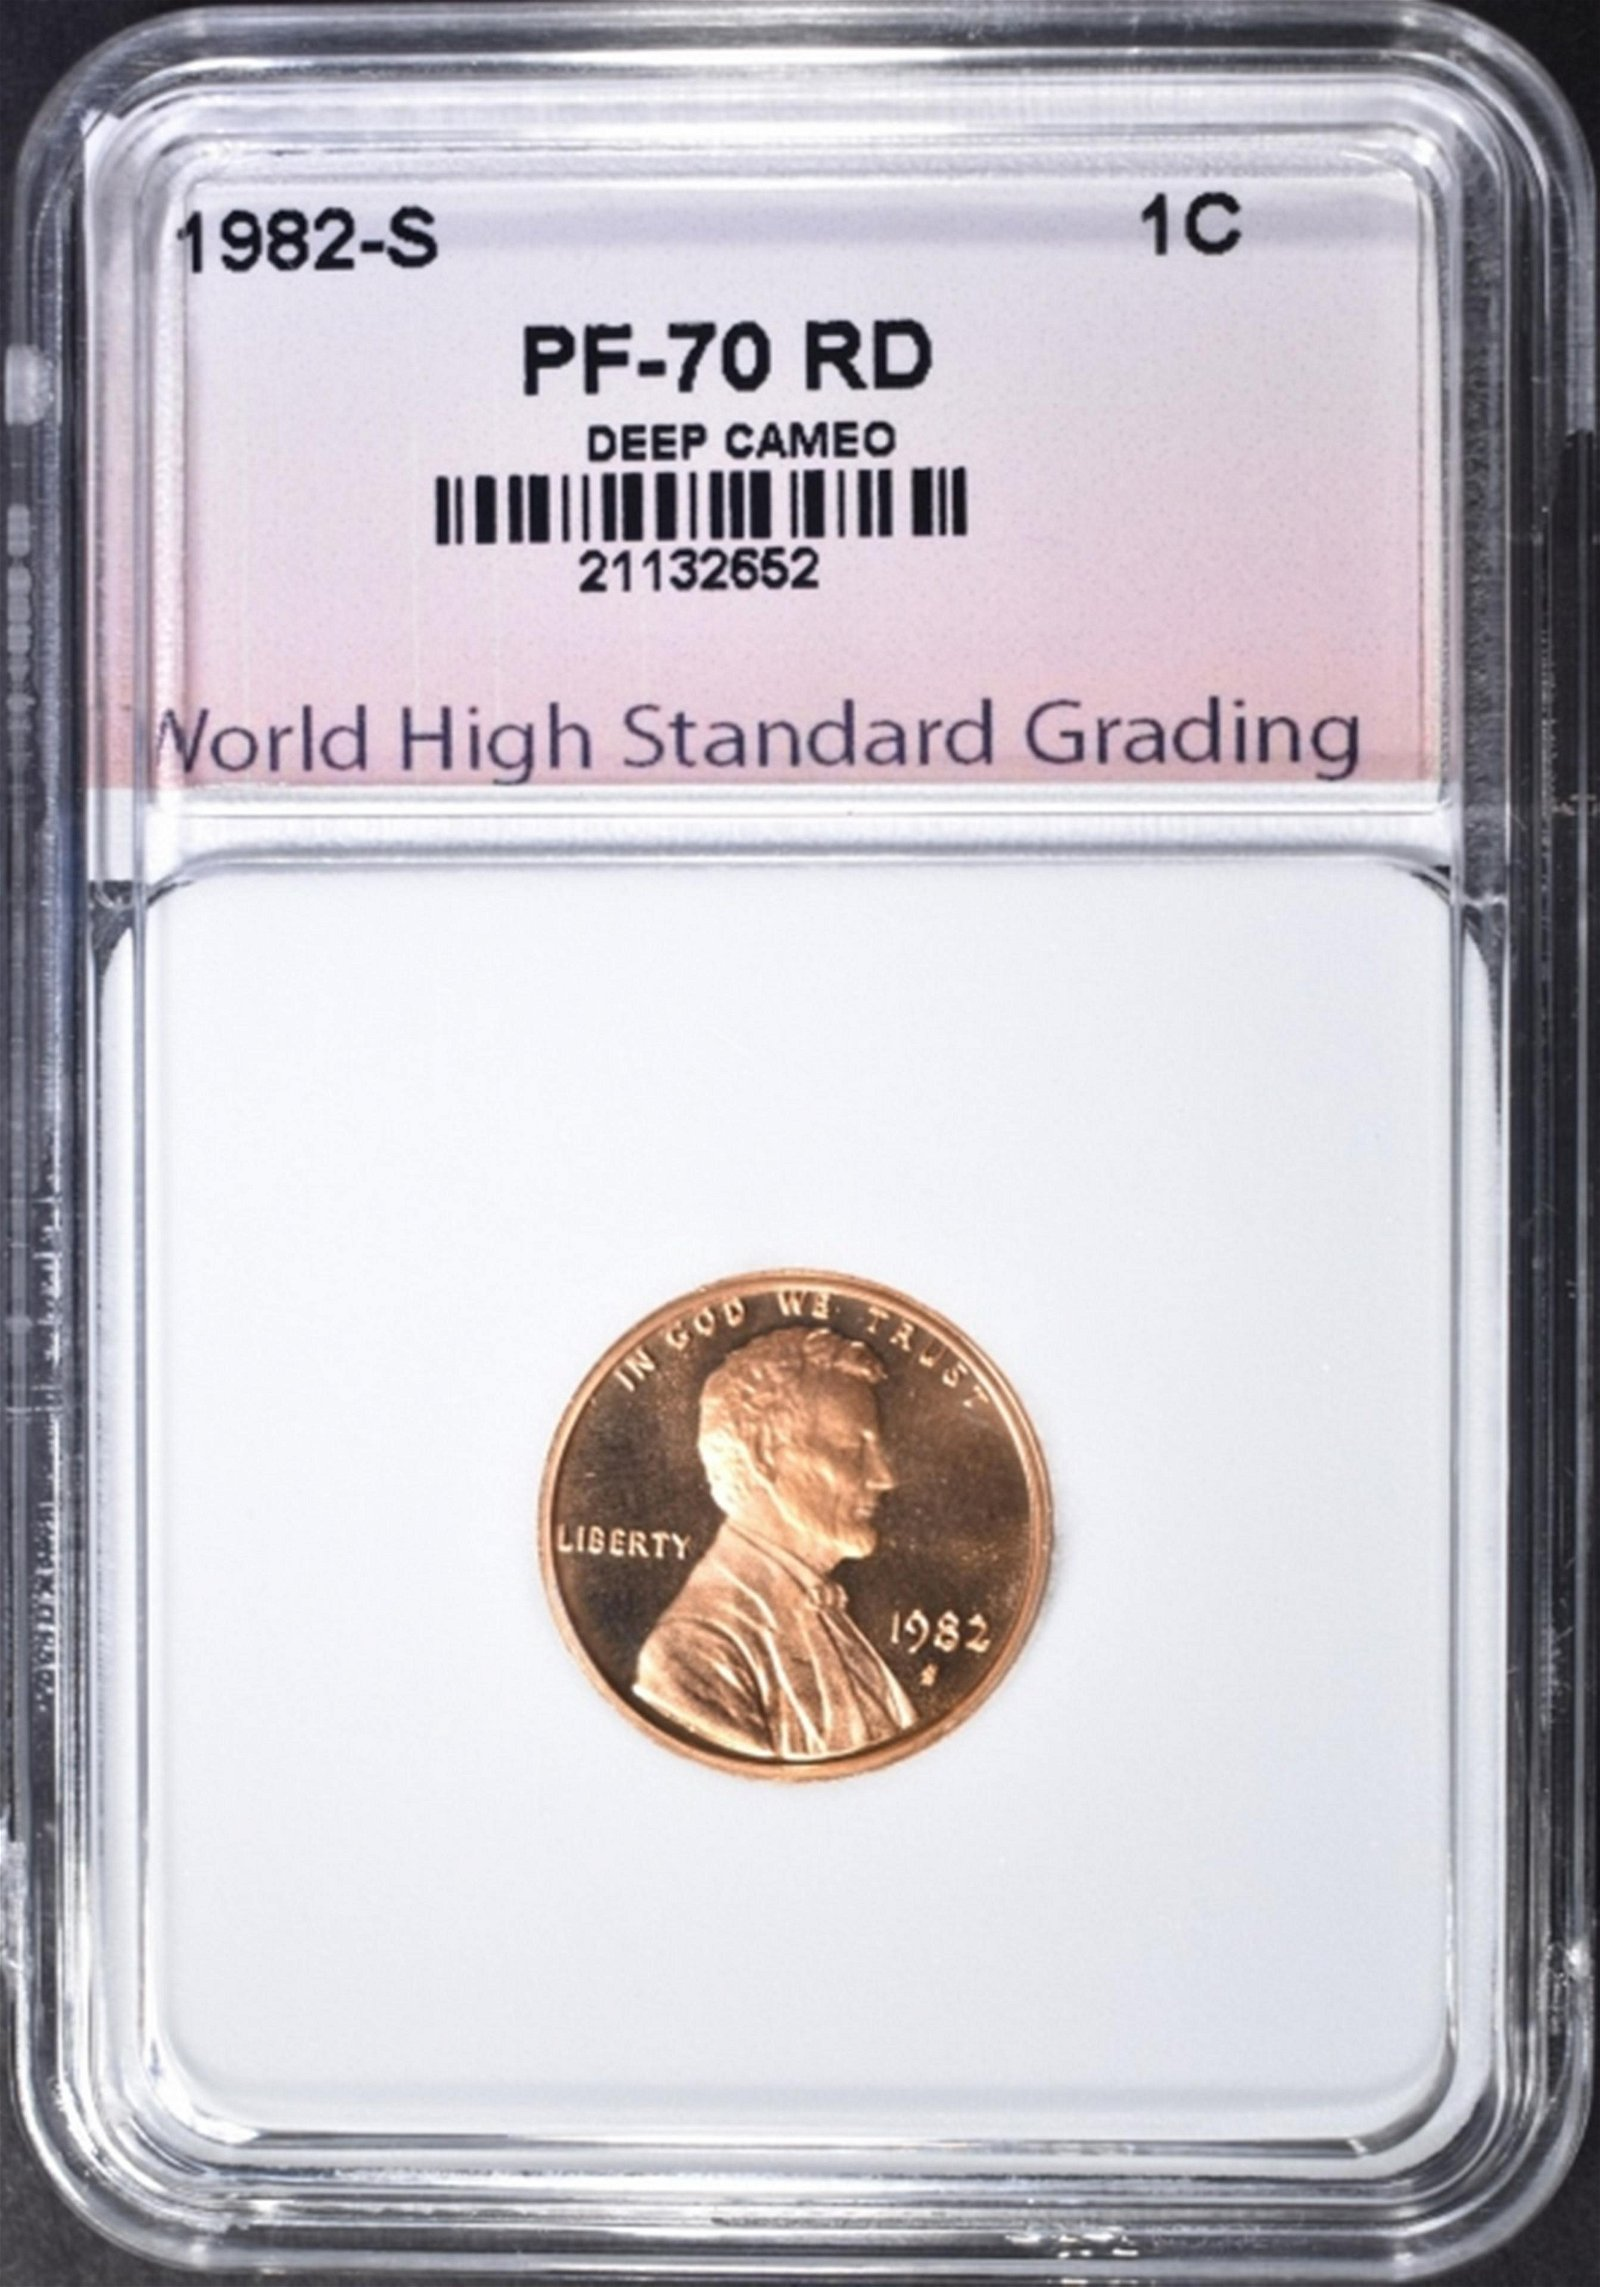 1982-S LINCOLN CENT, WSHG PERFECT GEM Pf RED